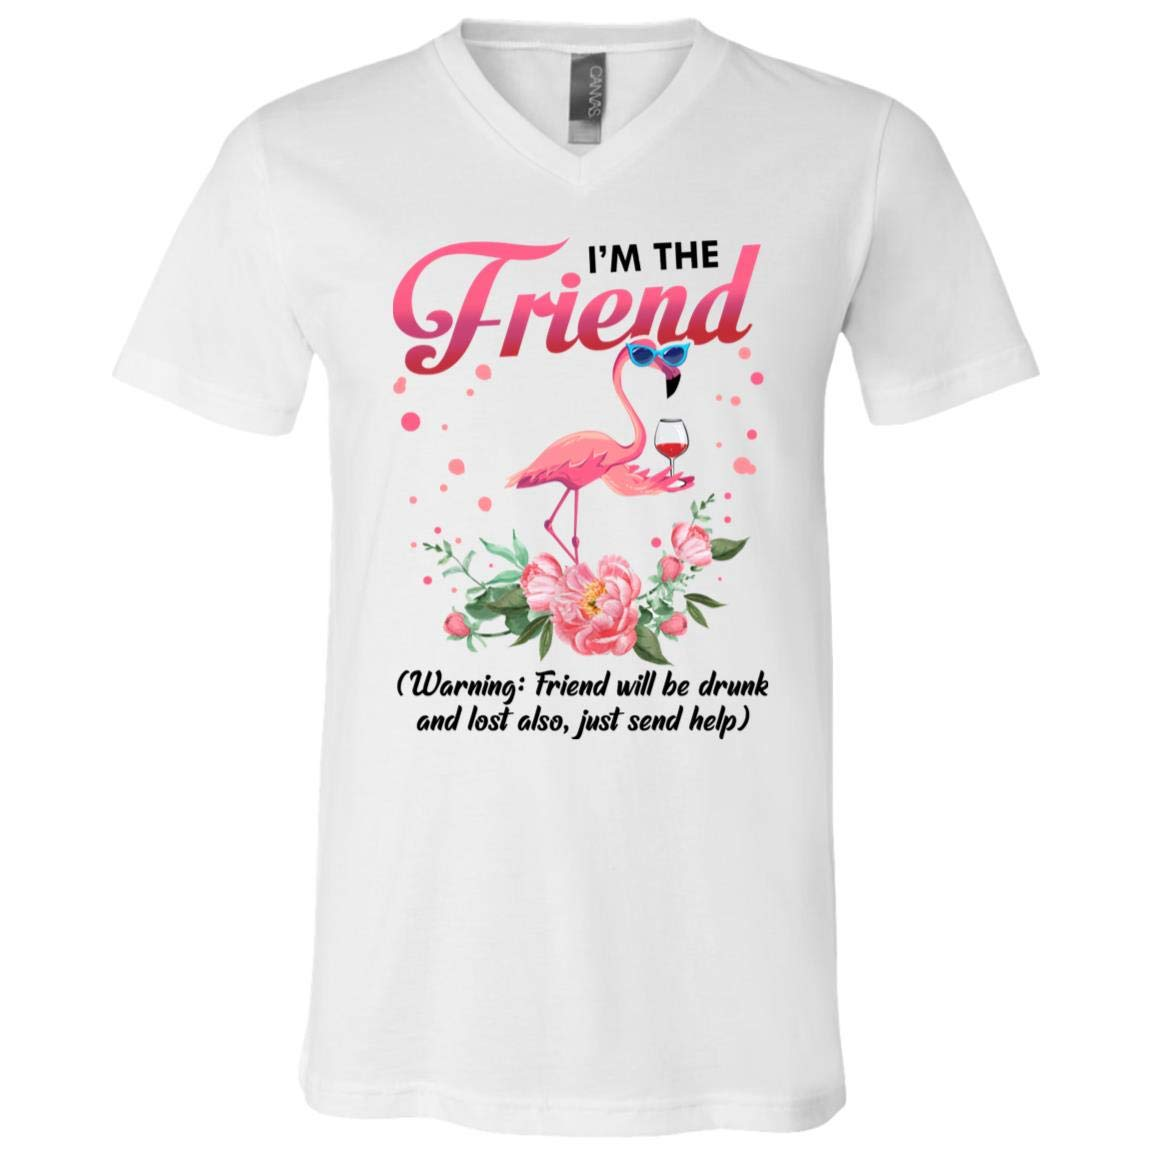 I M The Friend Warning Friend Will Be Drunk If Lost Or Drunk Flamingo T Shirt Or